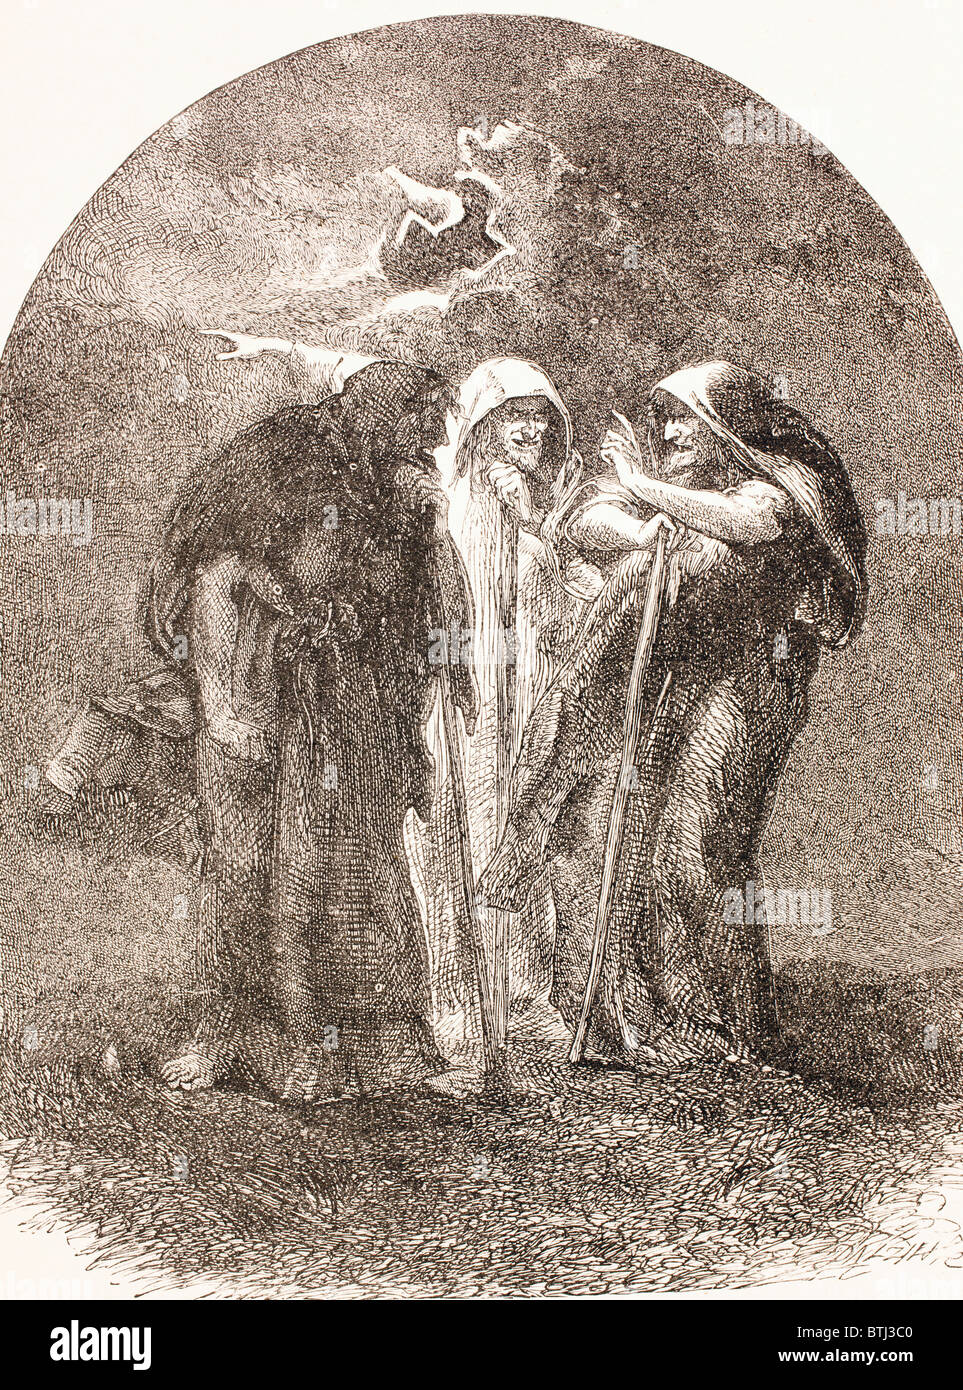 Illustration of the witches from Macbeth. - Stock Image